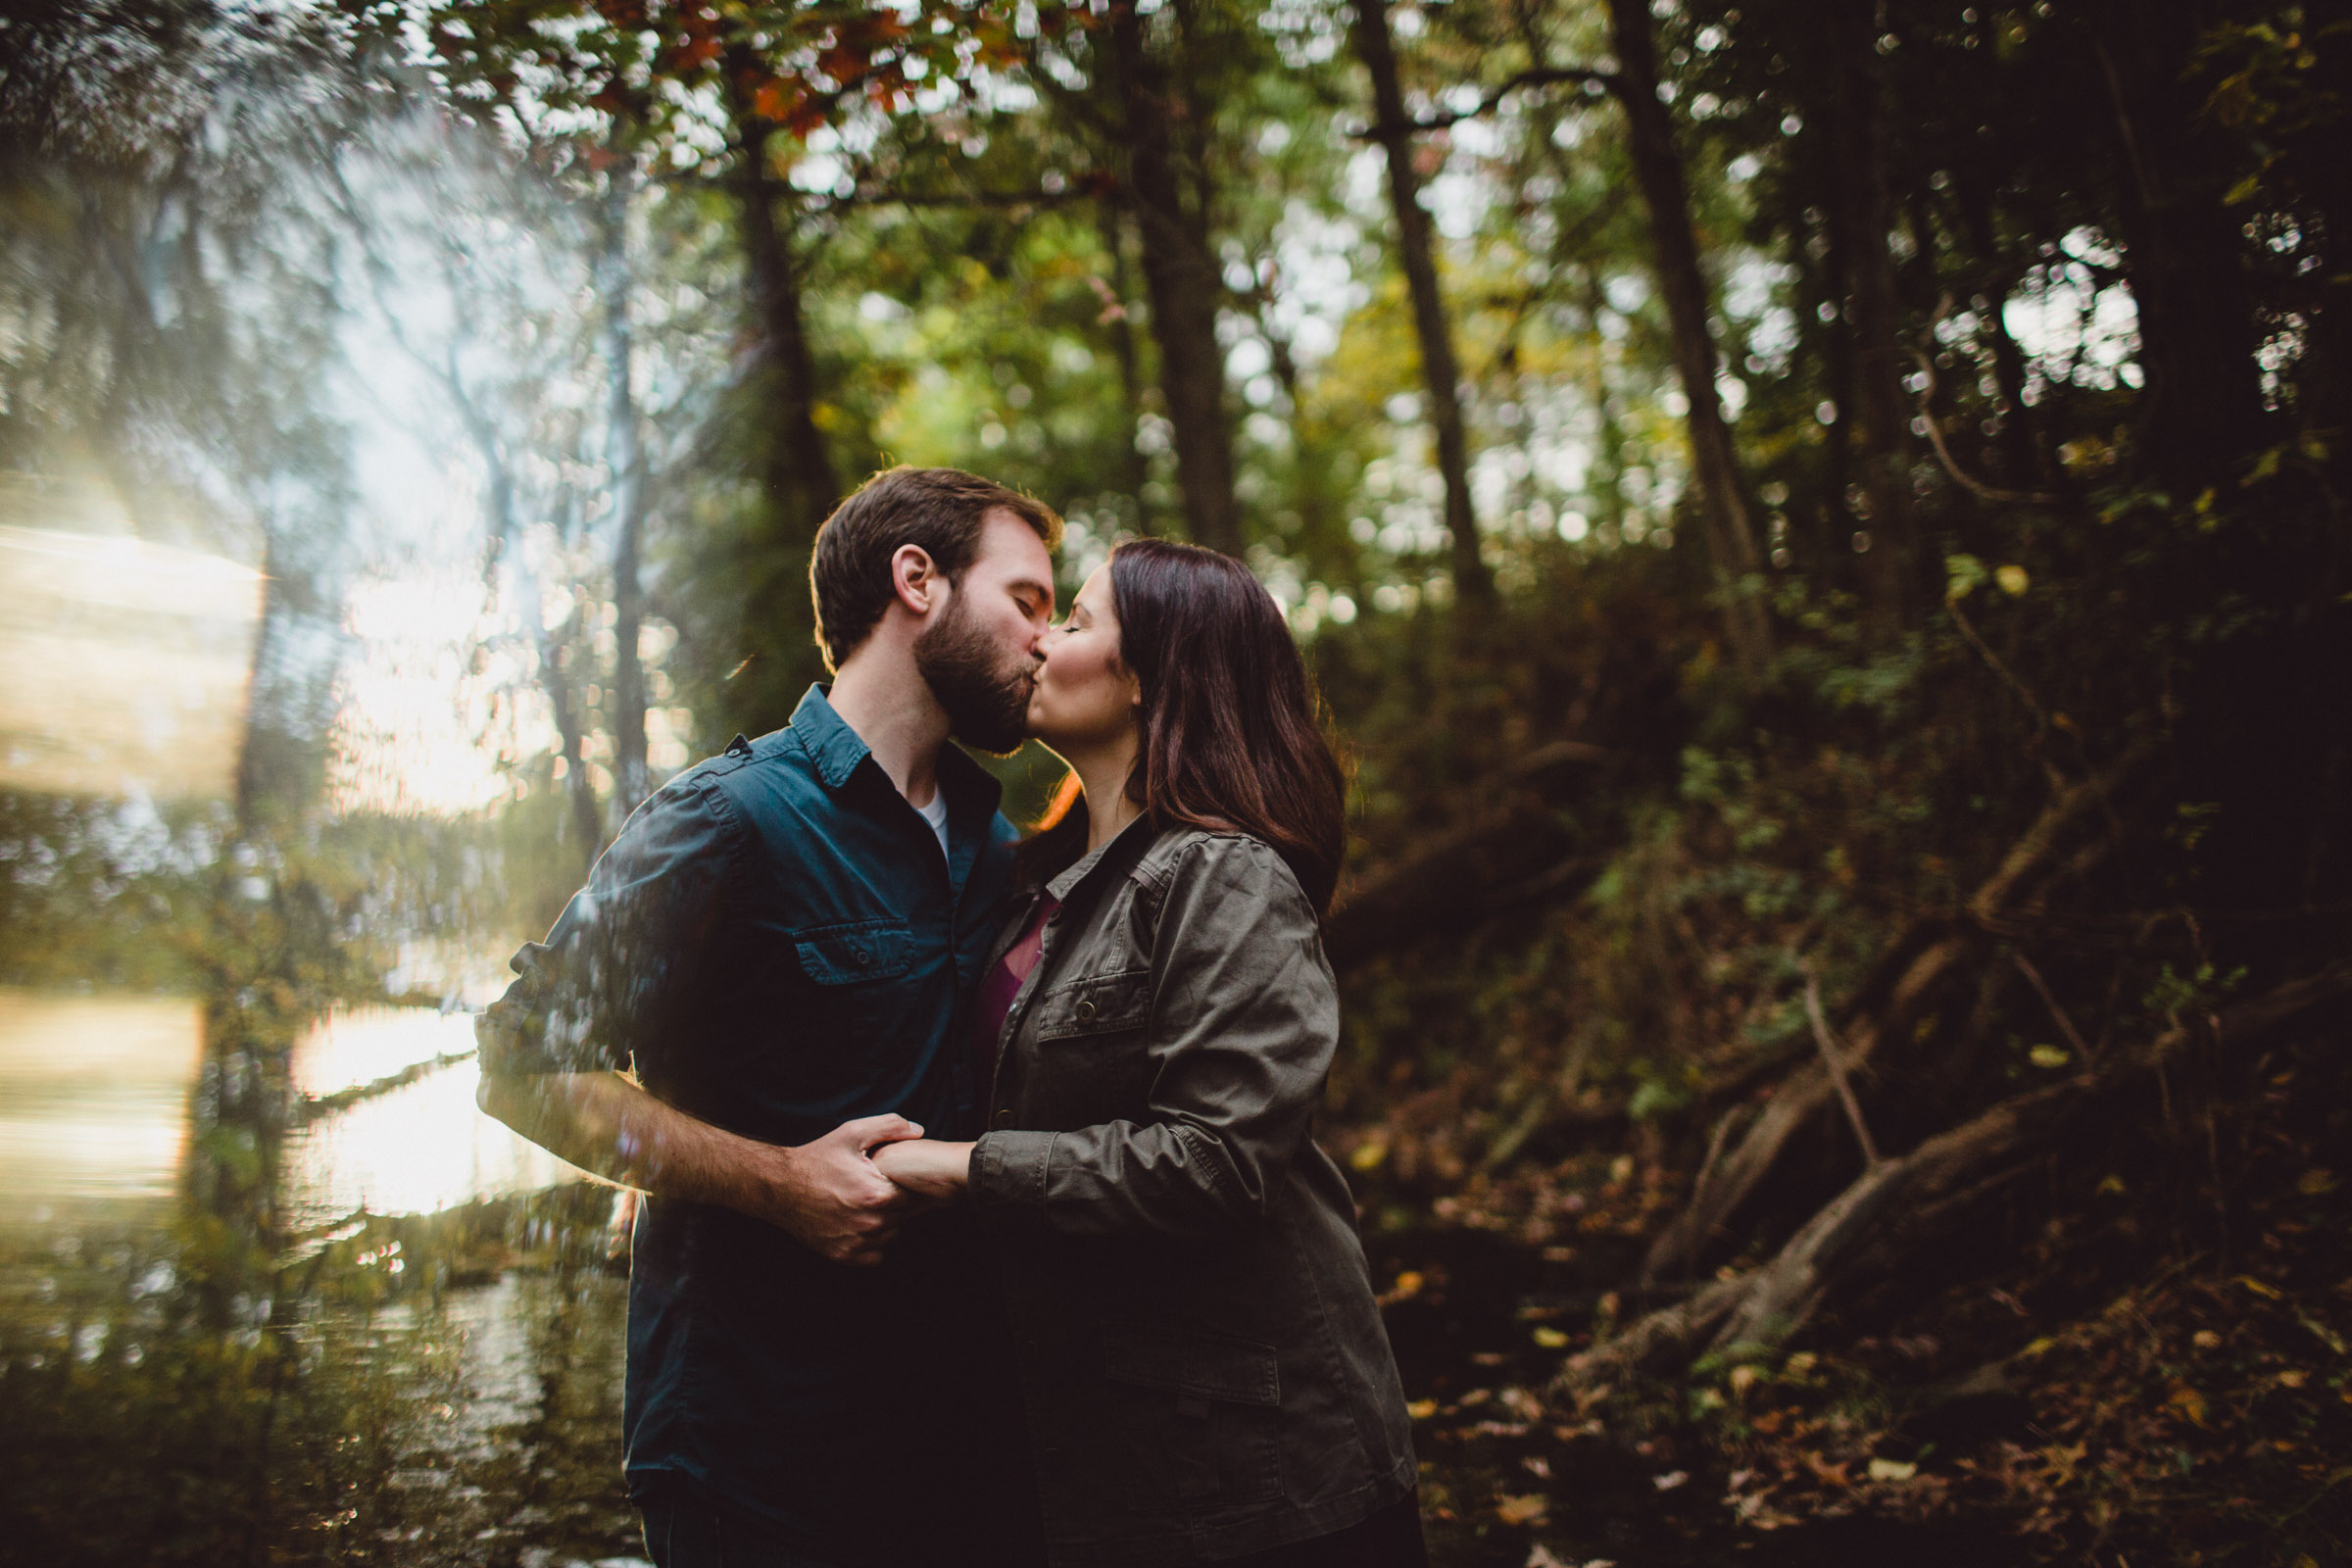 prism light with couple kissing